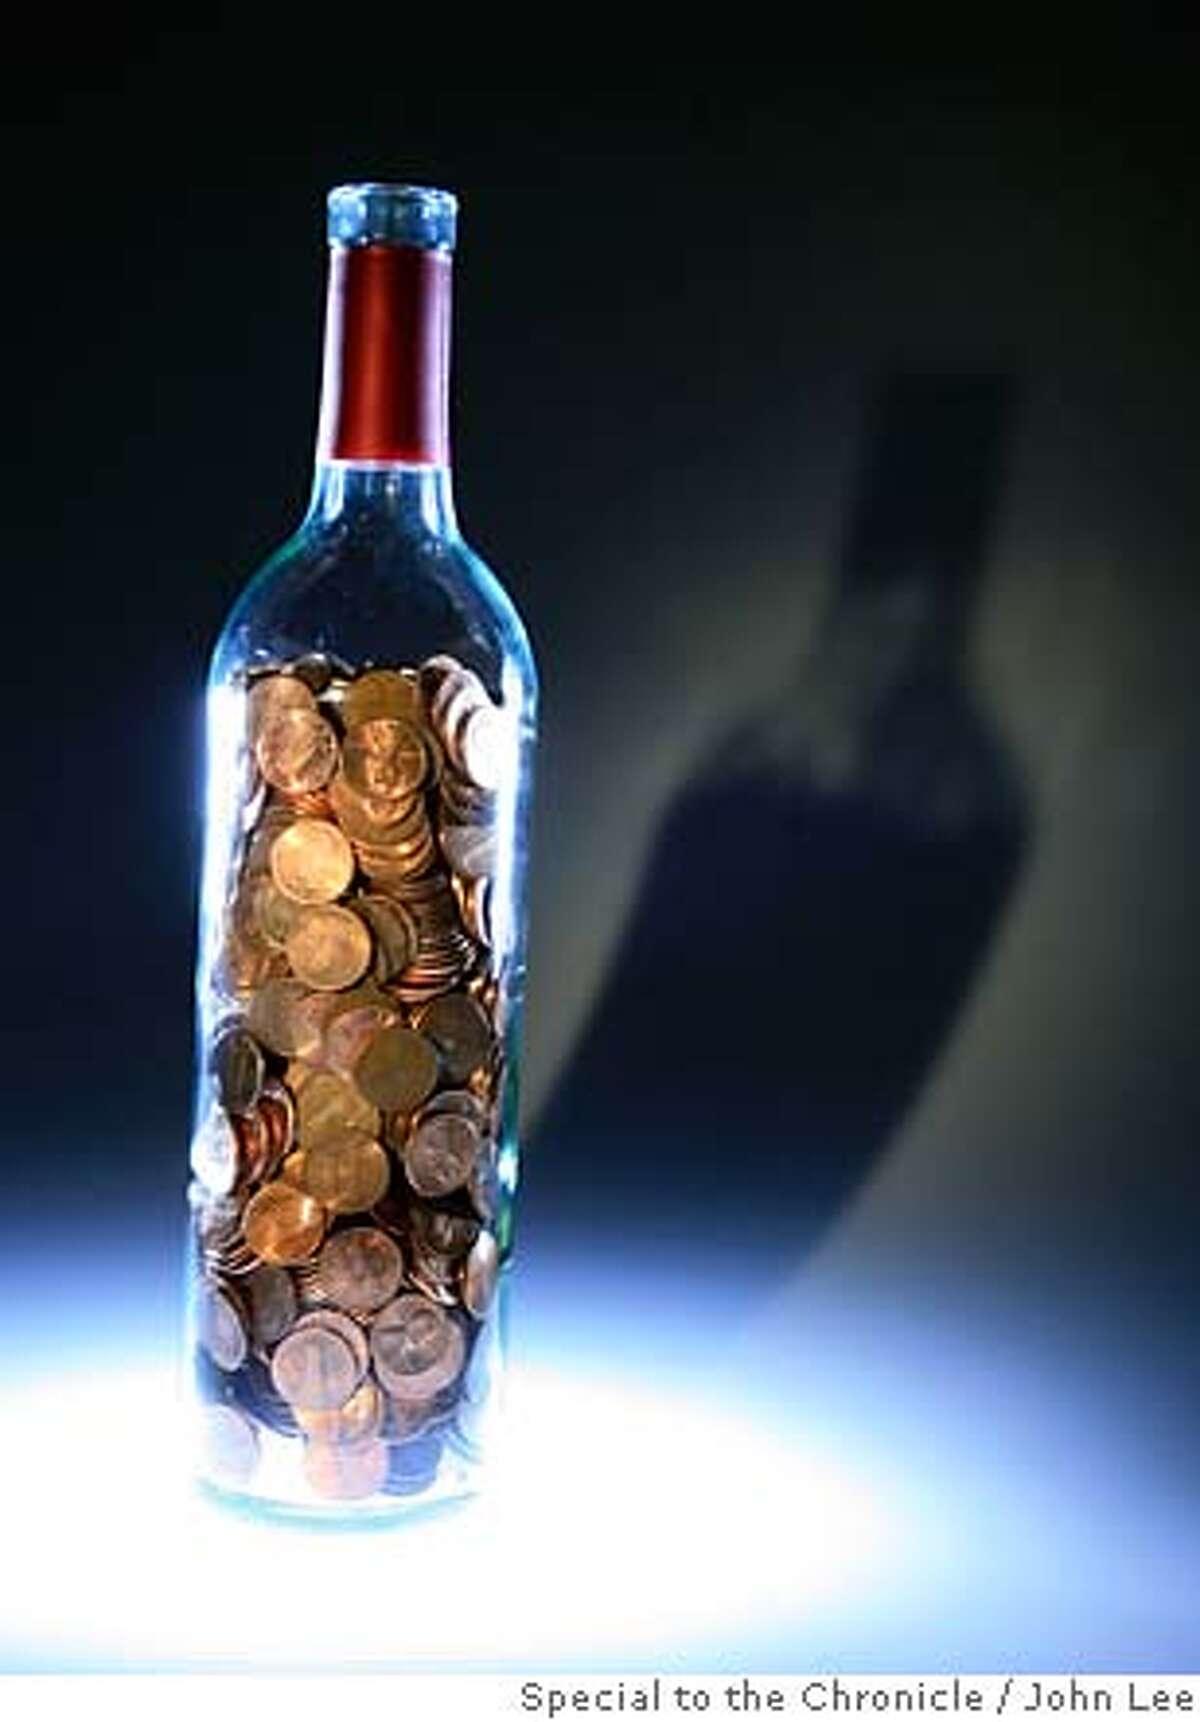 BARGAINBONANZA29_02JOHNLEE.JPG Empty wine bottle with a bunch of pennies in it. By JOHN LEE/SPECIAL TO THE CHRONICLE